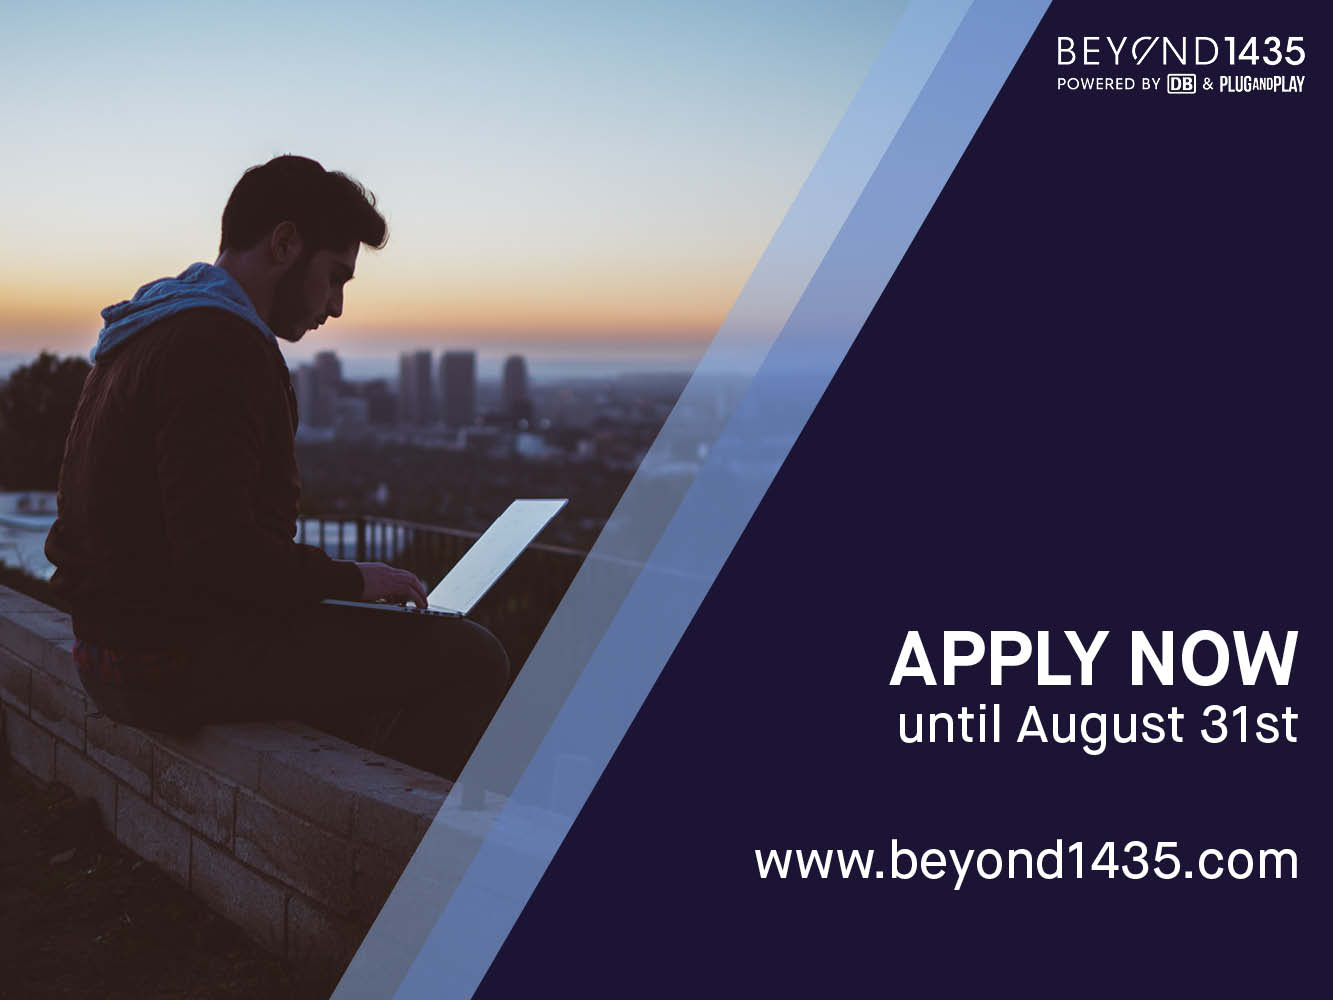 Apply for the second batch by August 31.